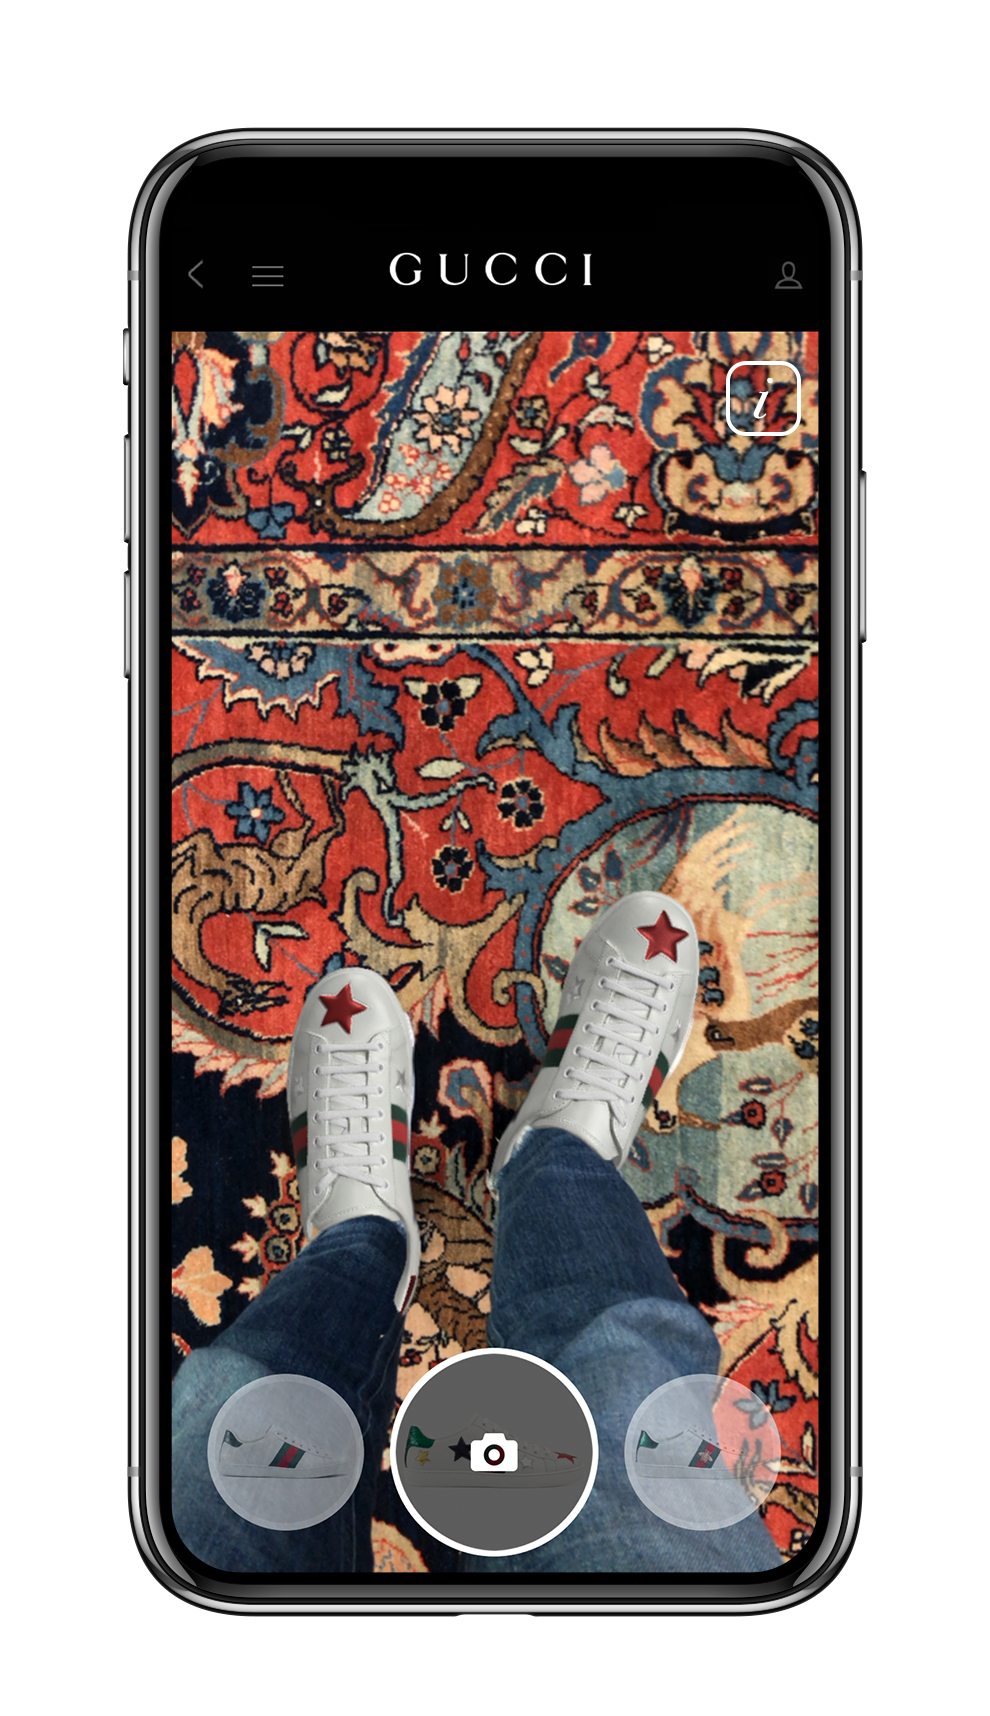 Gucci Ace Sneaker Try On App_Result 3.png